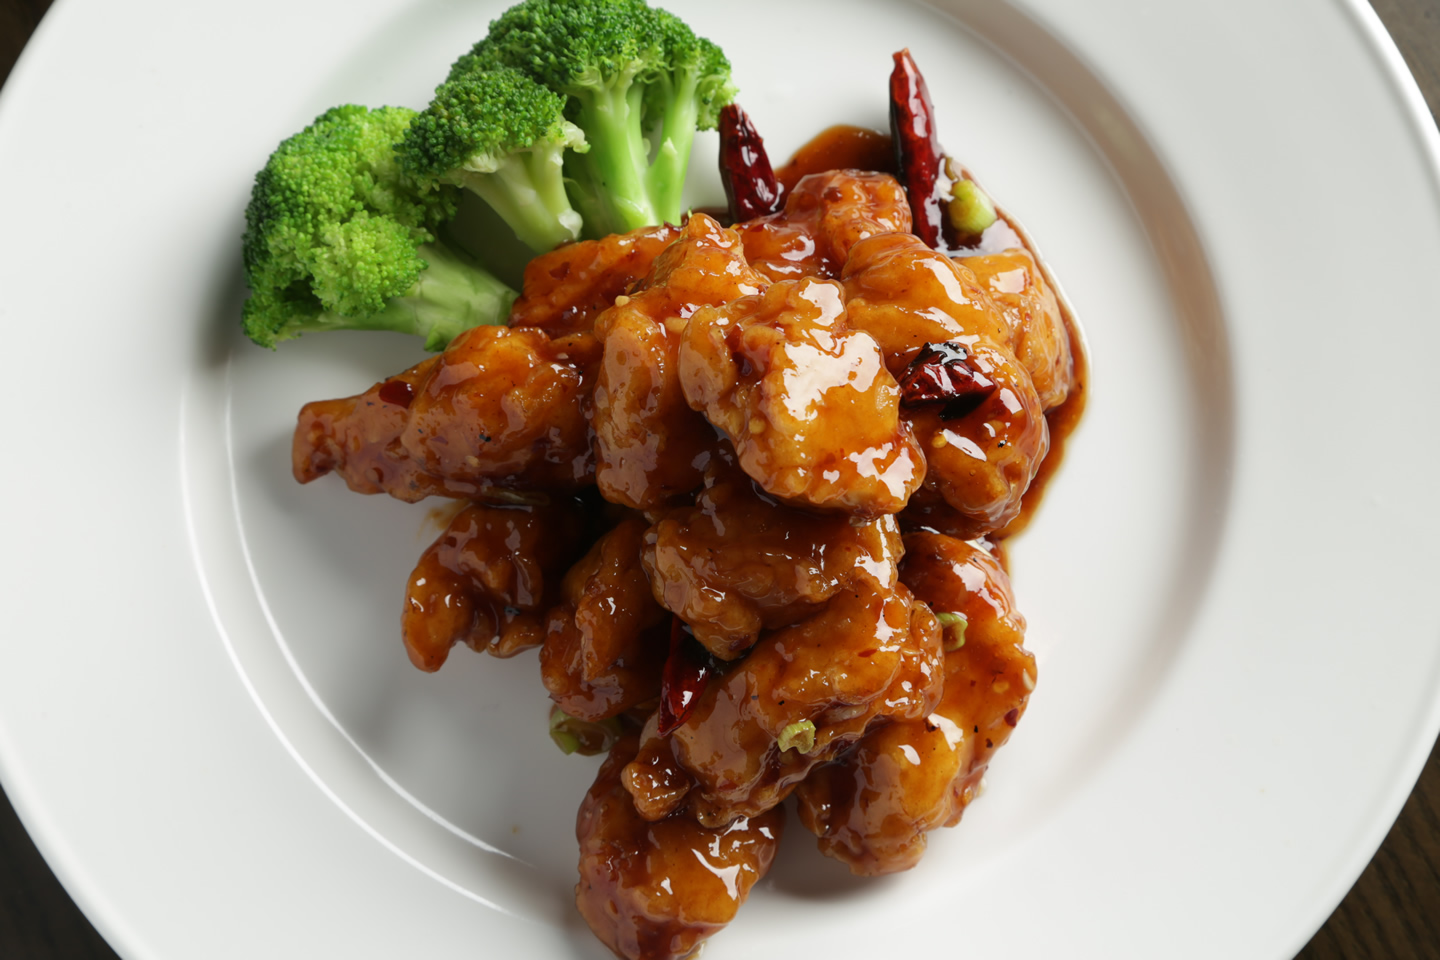 Gluten Free Chinese Food Fairfield Ct